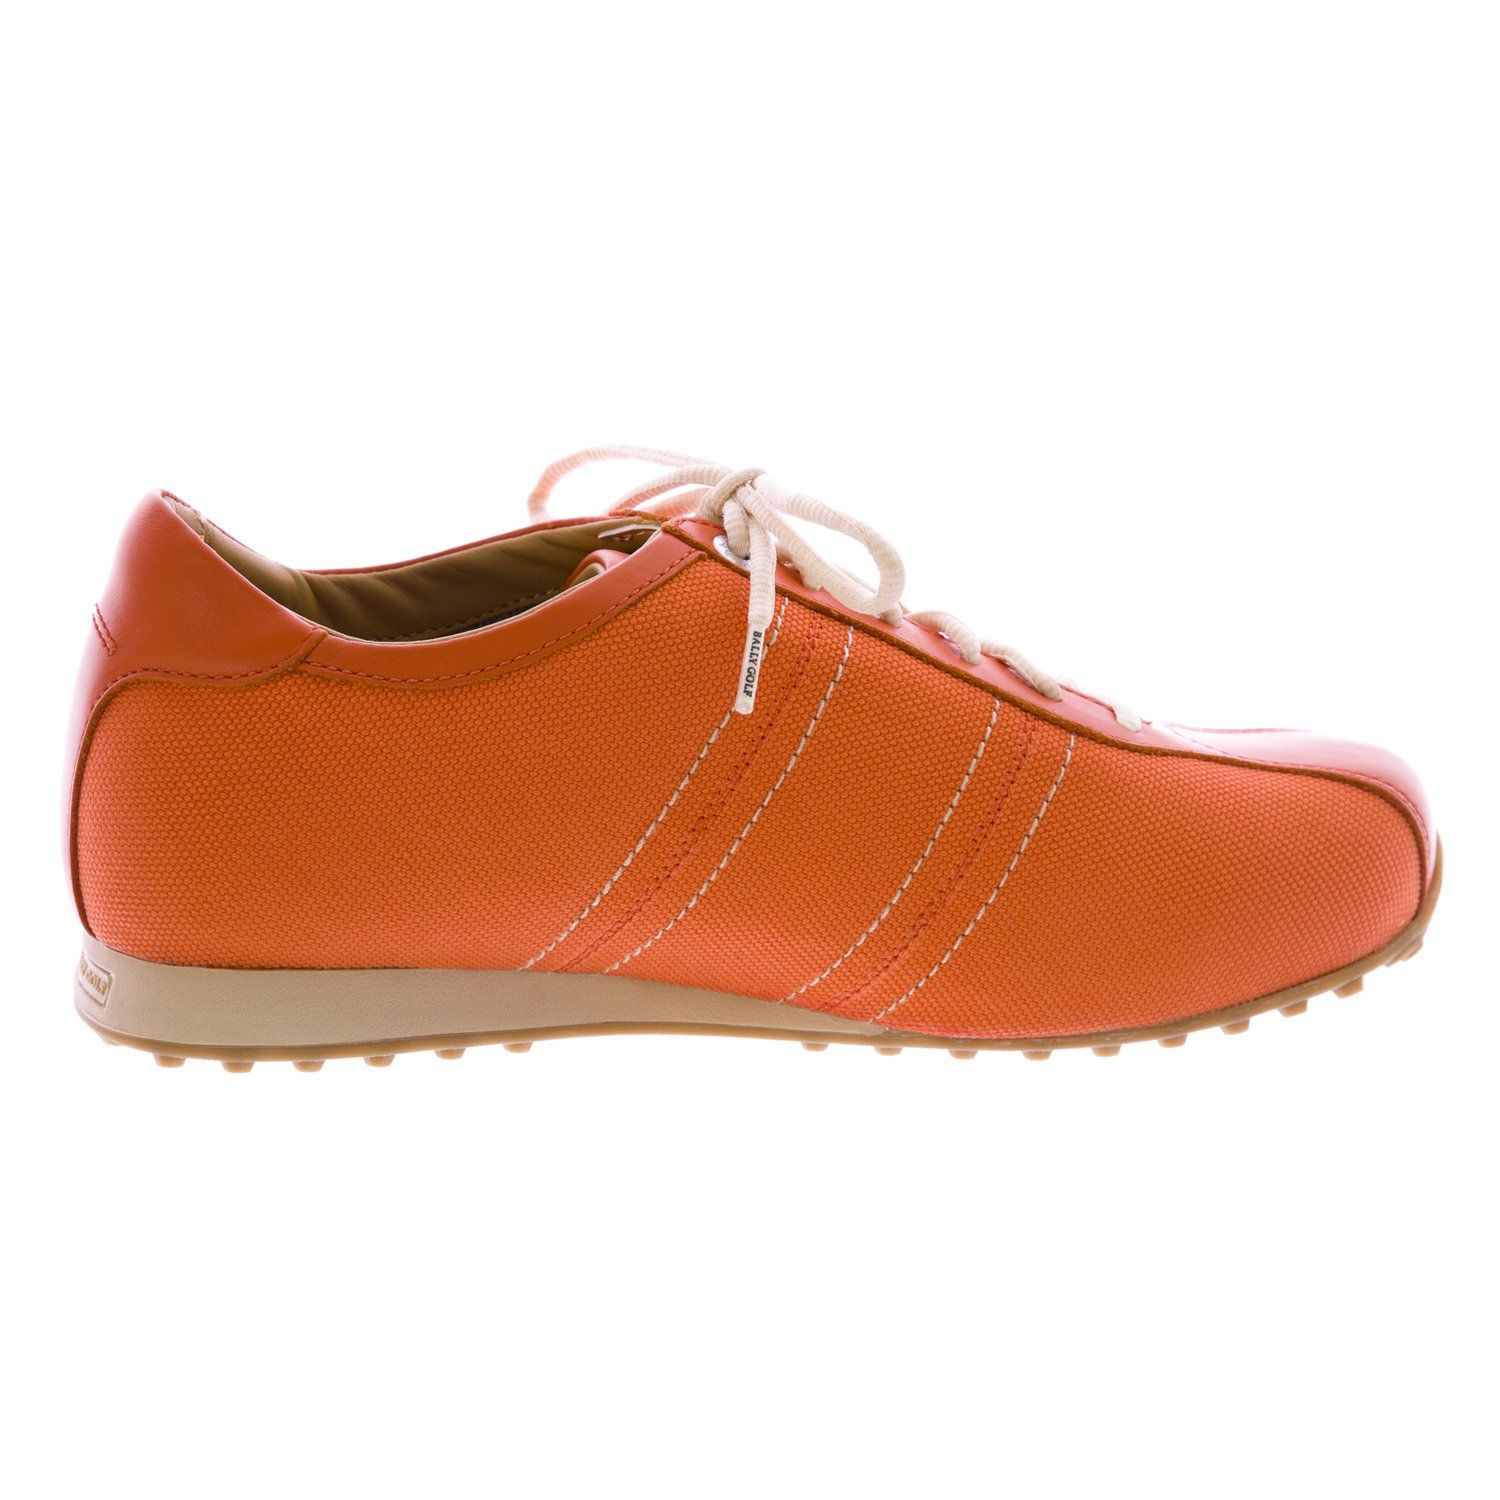 BALLY Golf Women Fresh Leather Golf Shoes 10 Coral Rose    Read more at the  image link. (This is an affiliate link)  WomensGolfShoes 9af7f87986ee